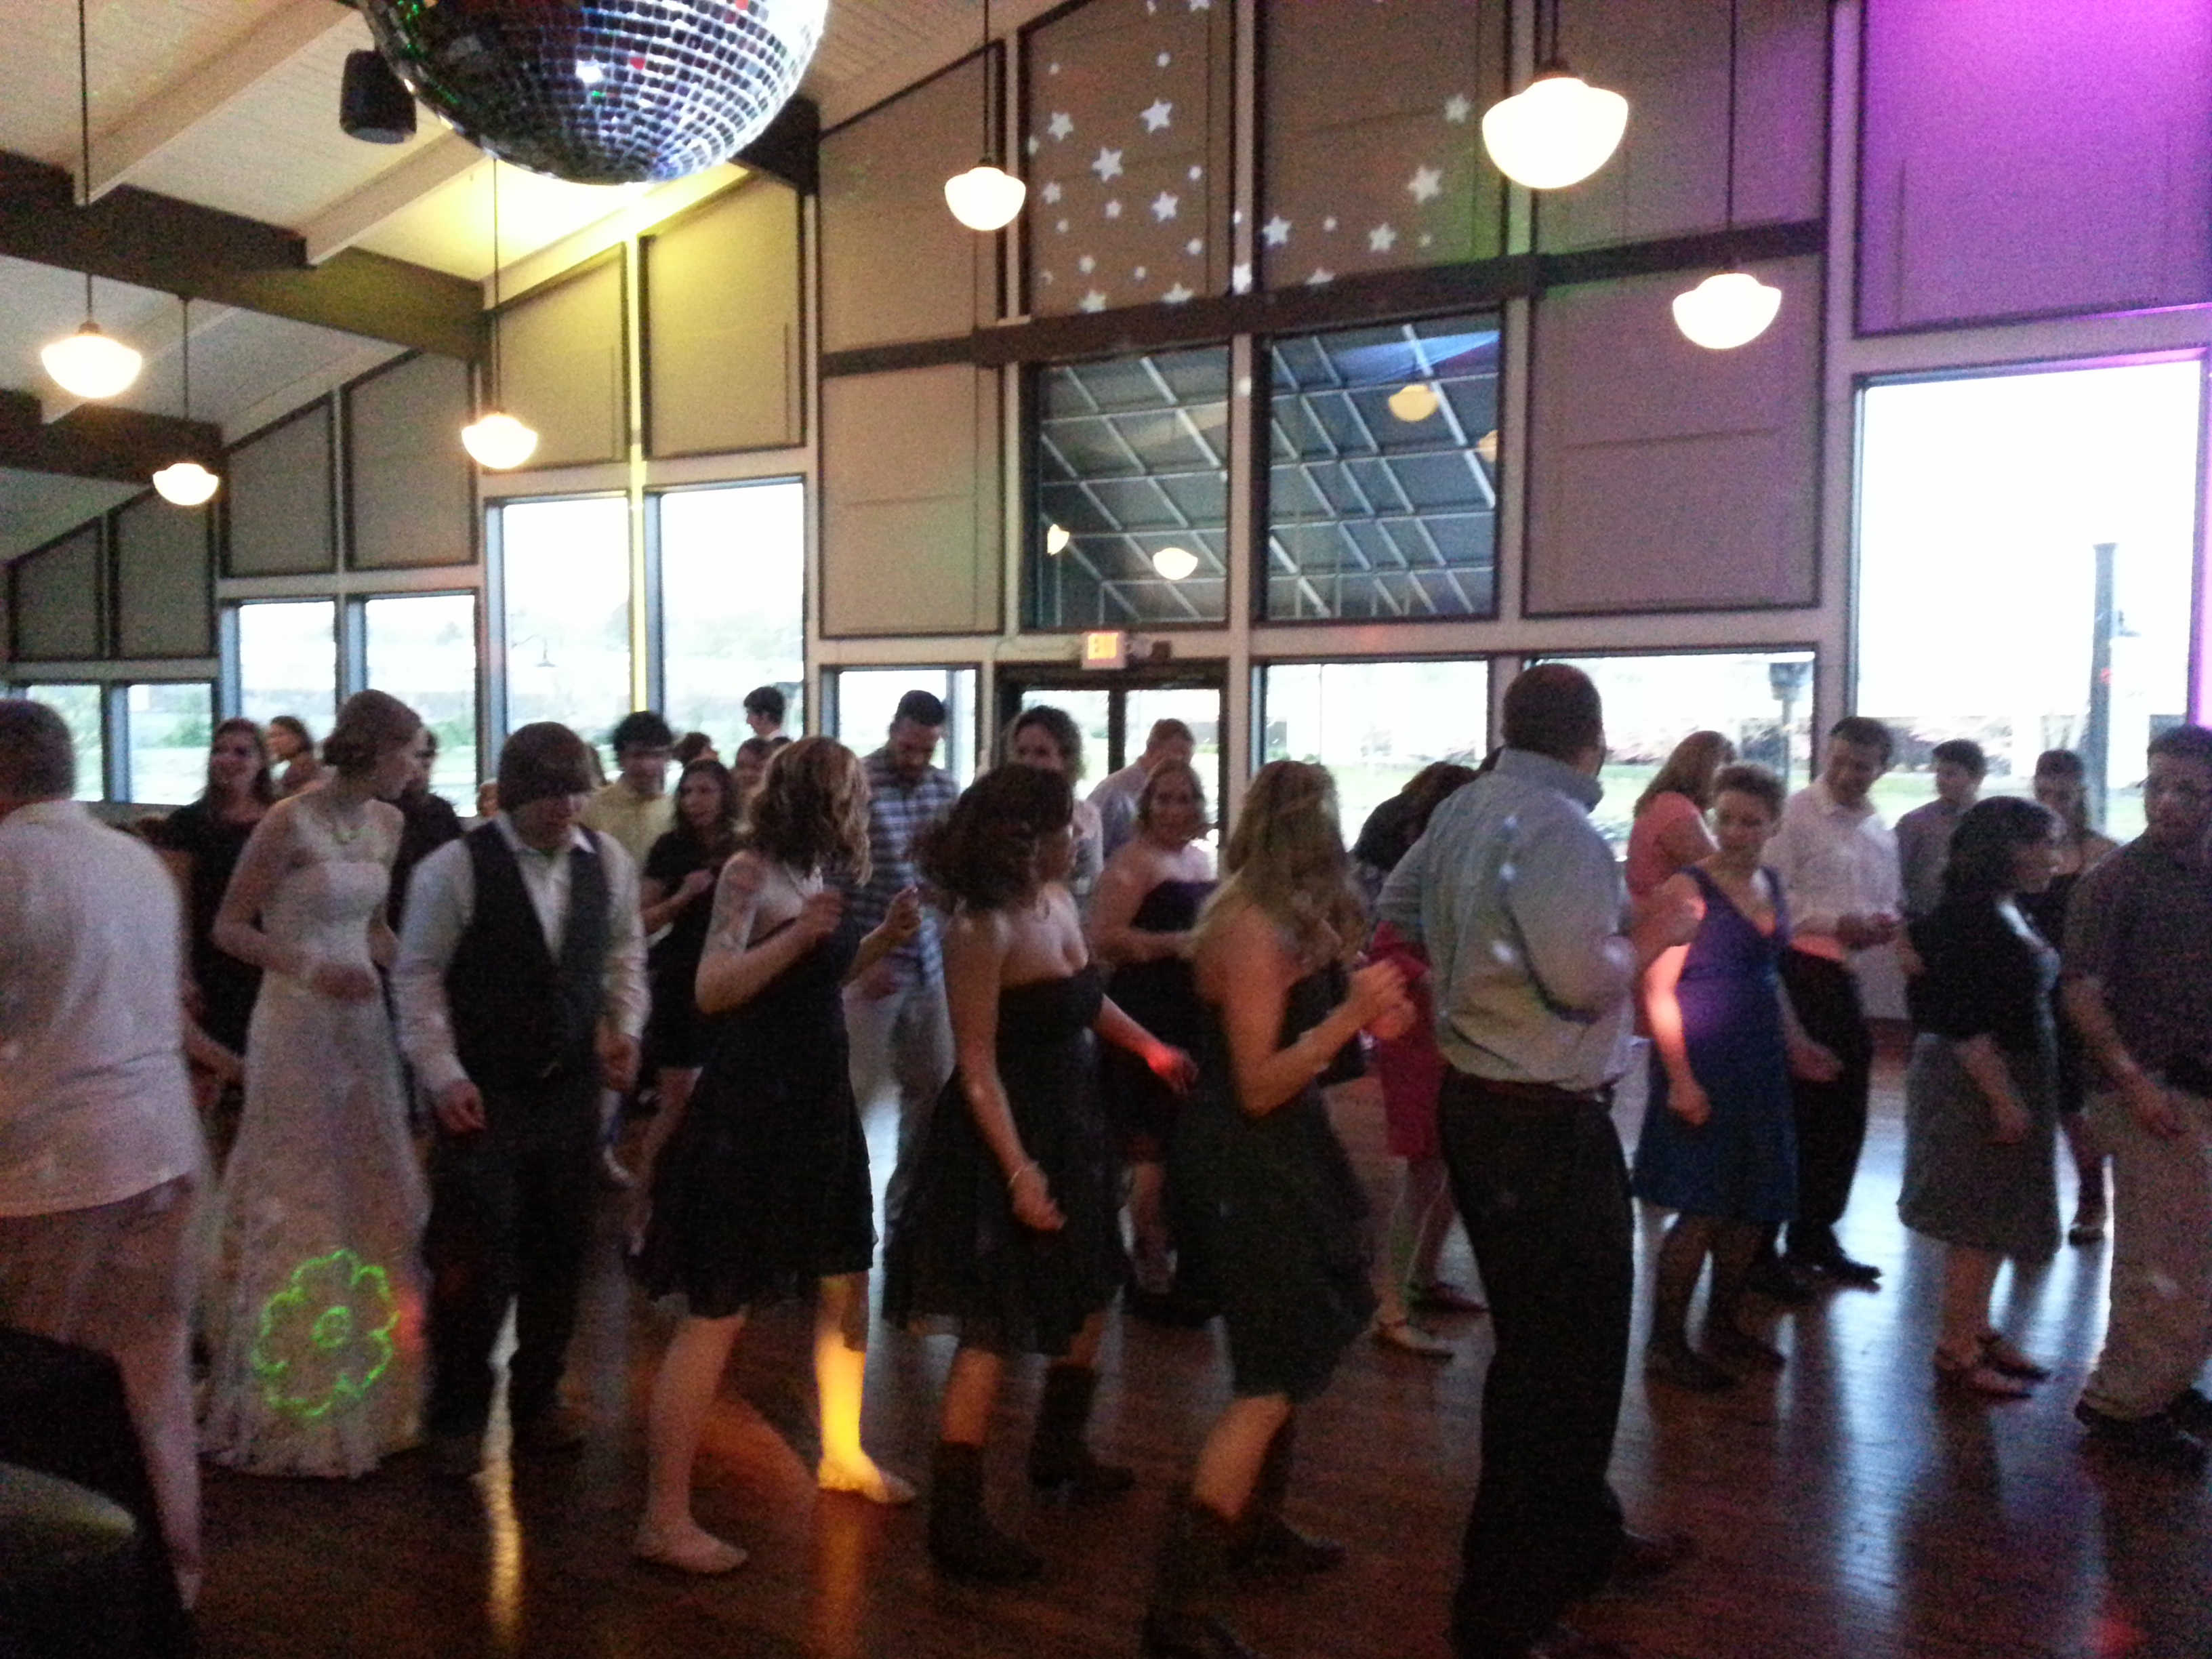 Dancing at the Wedding - Knoxville TN